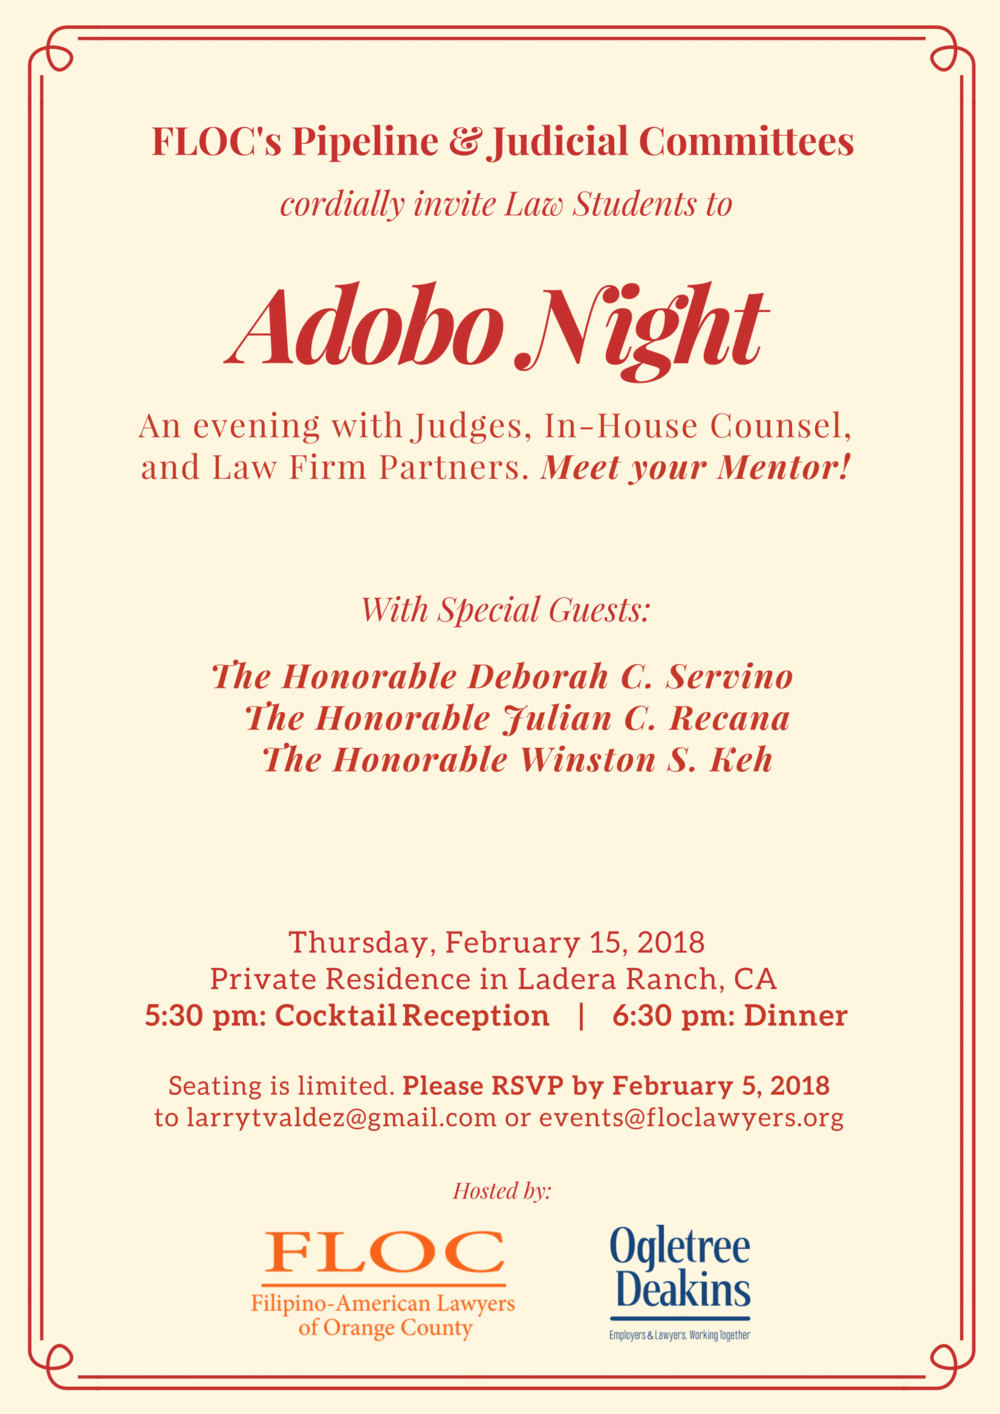 Filipino-American Lawyers of Orange County Upcoming Events